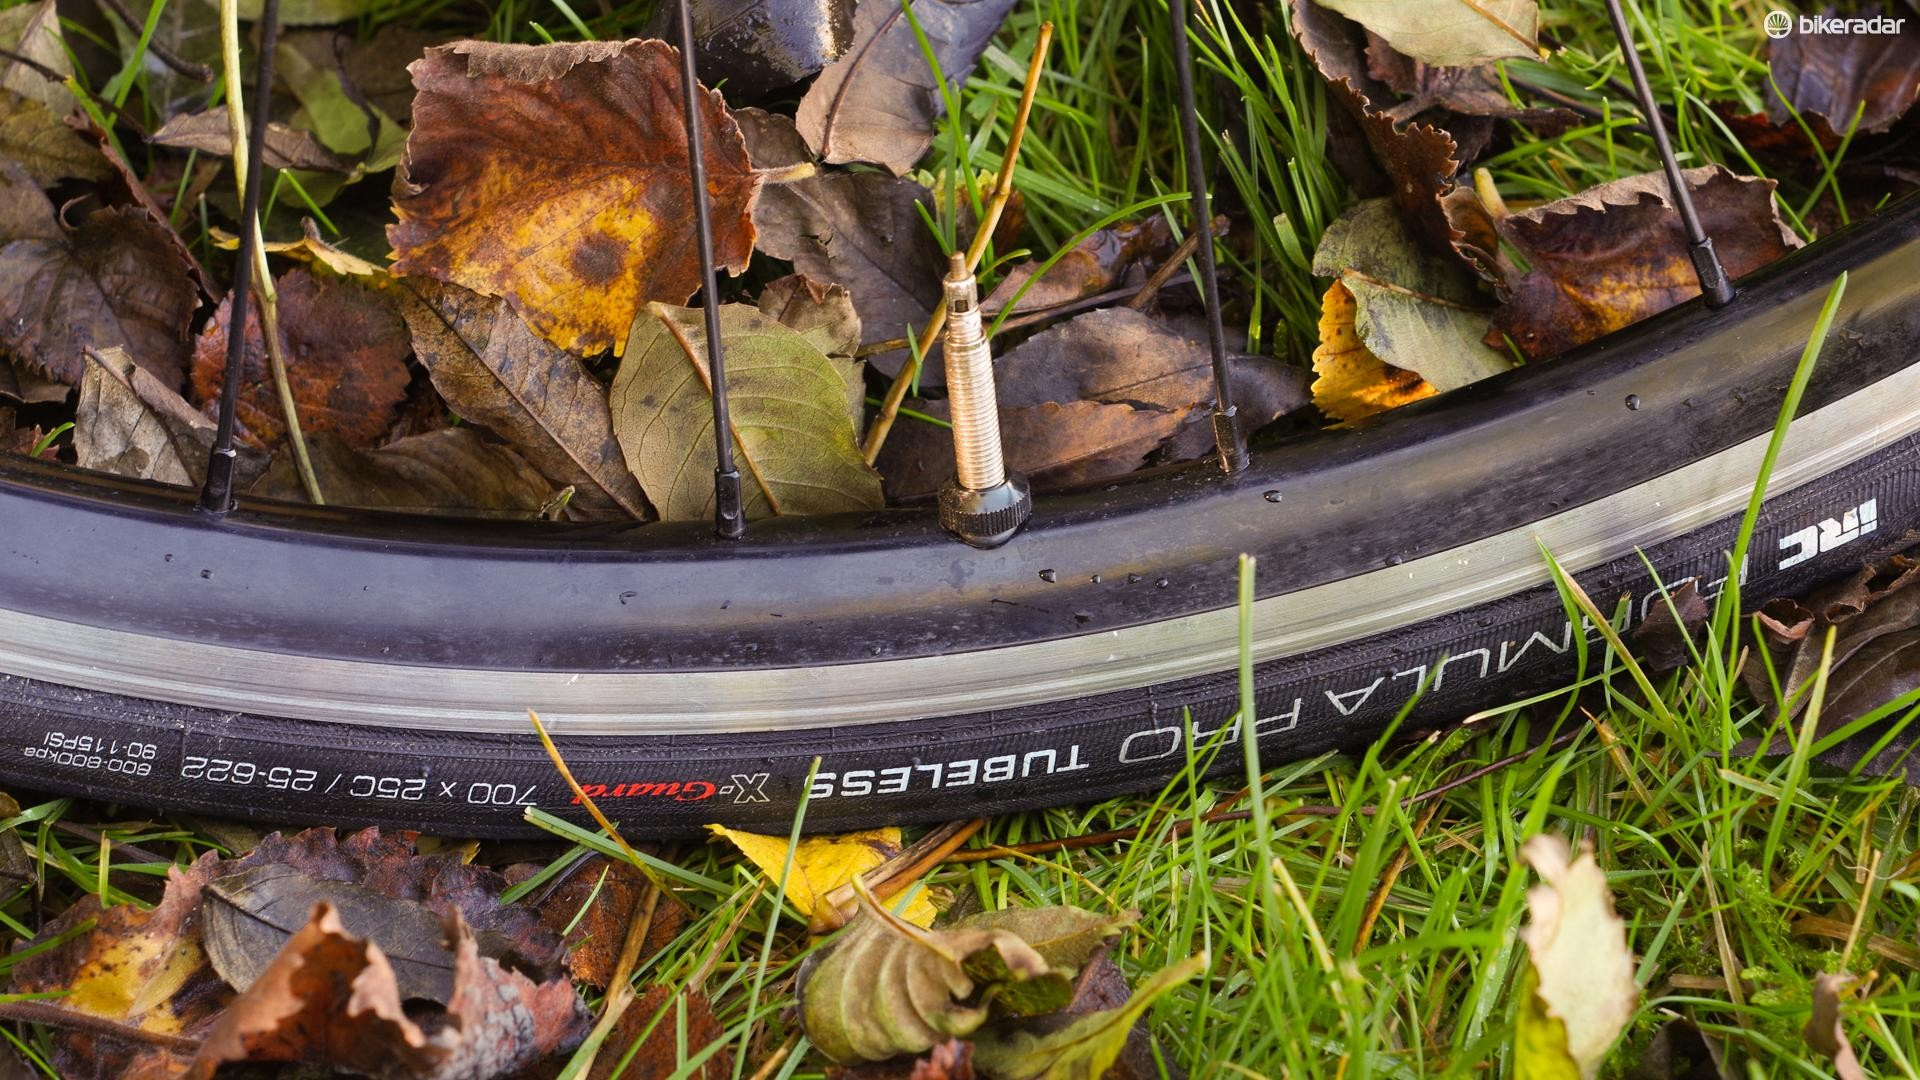 The Borg22s have a usefully wide alloy rim, and they come with tubeless tape and valves as standard